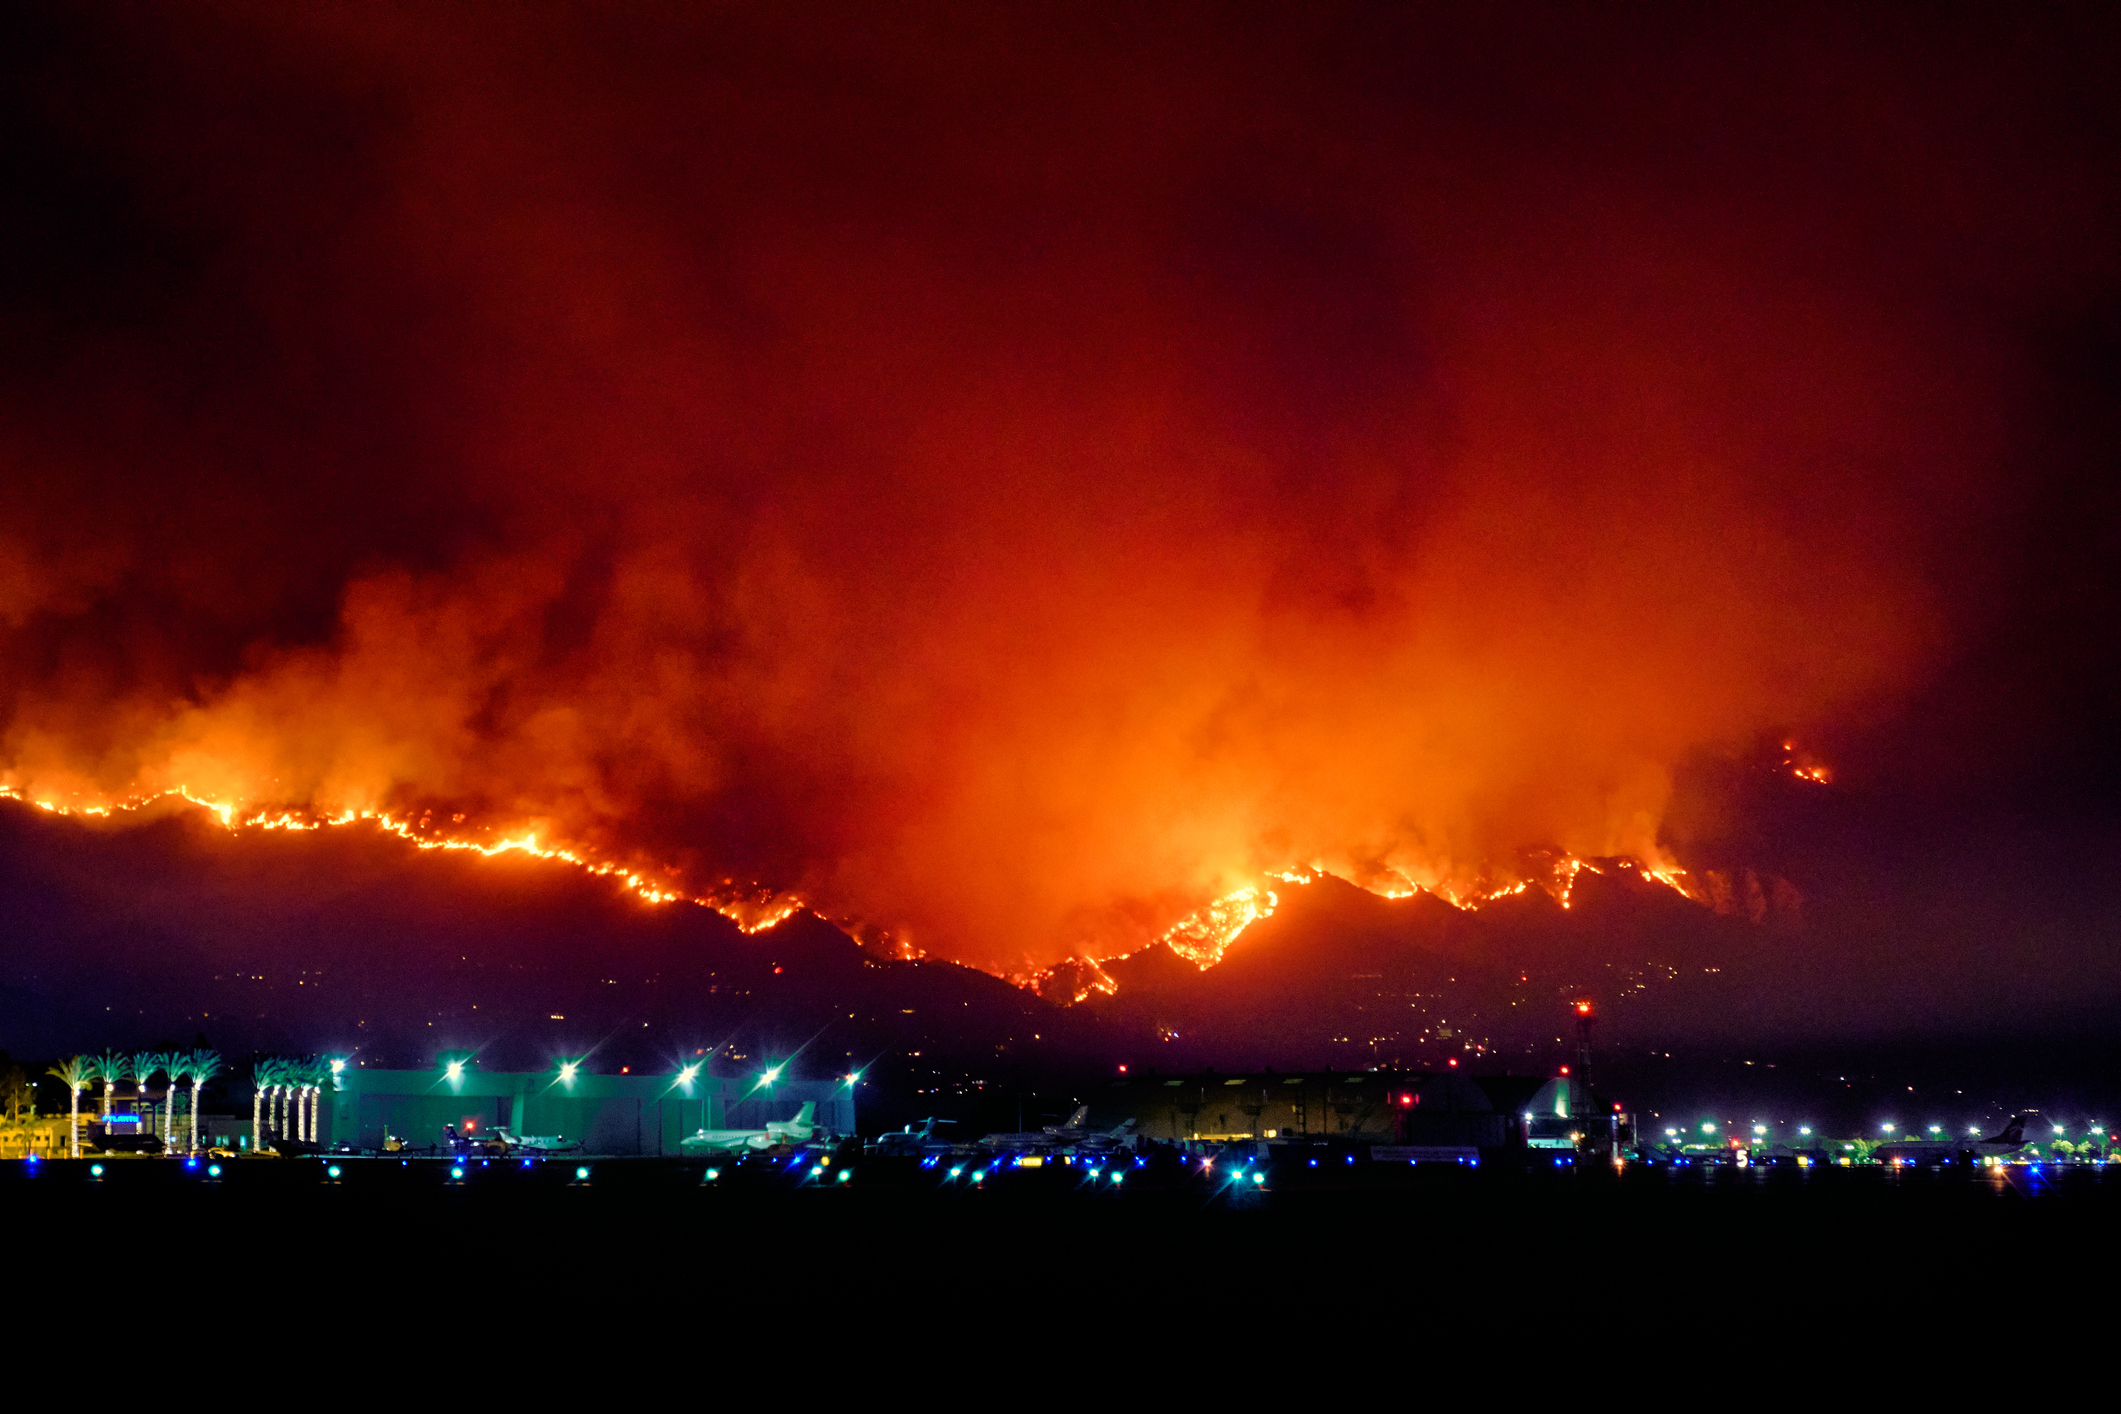 Los Angeles' largest wildfire to date, which burned more than 7,000 acres in the Verdugo Mountains area